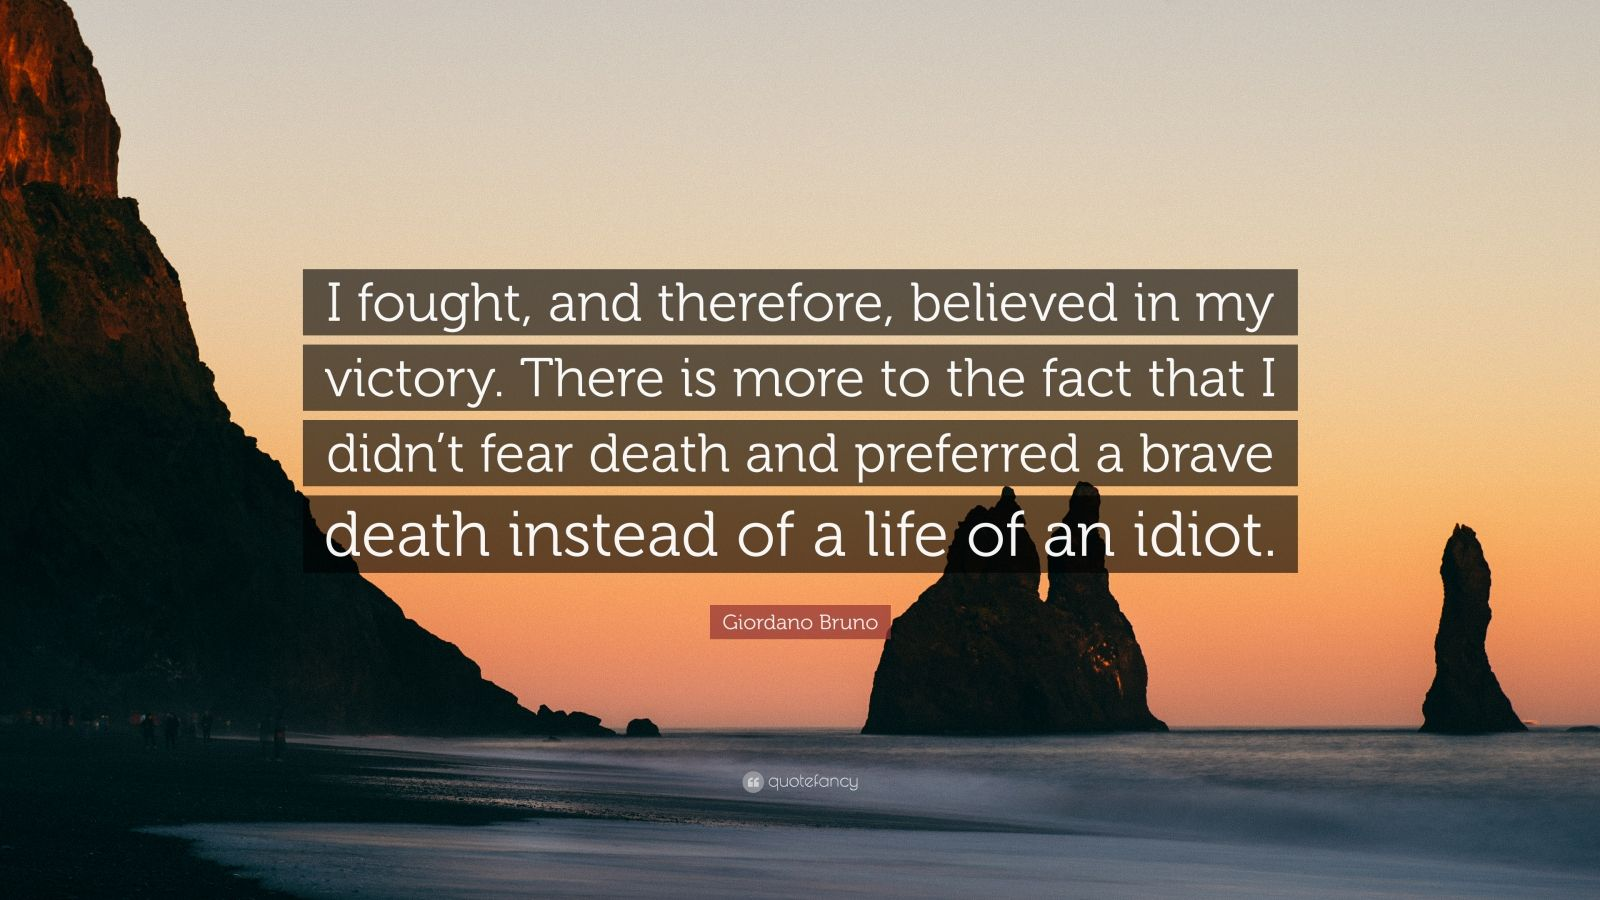 """Giordano Bruno Quote: """"I fought, and therefore, believed in my victory. There is more to the fact that I didn't fear death and preferred a brave death instead of a life of an idiot."""""""